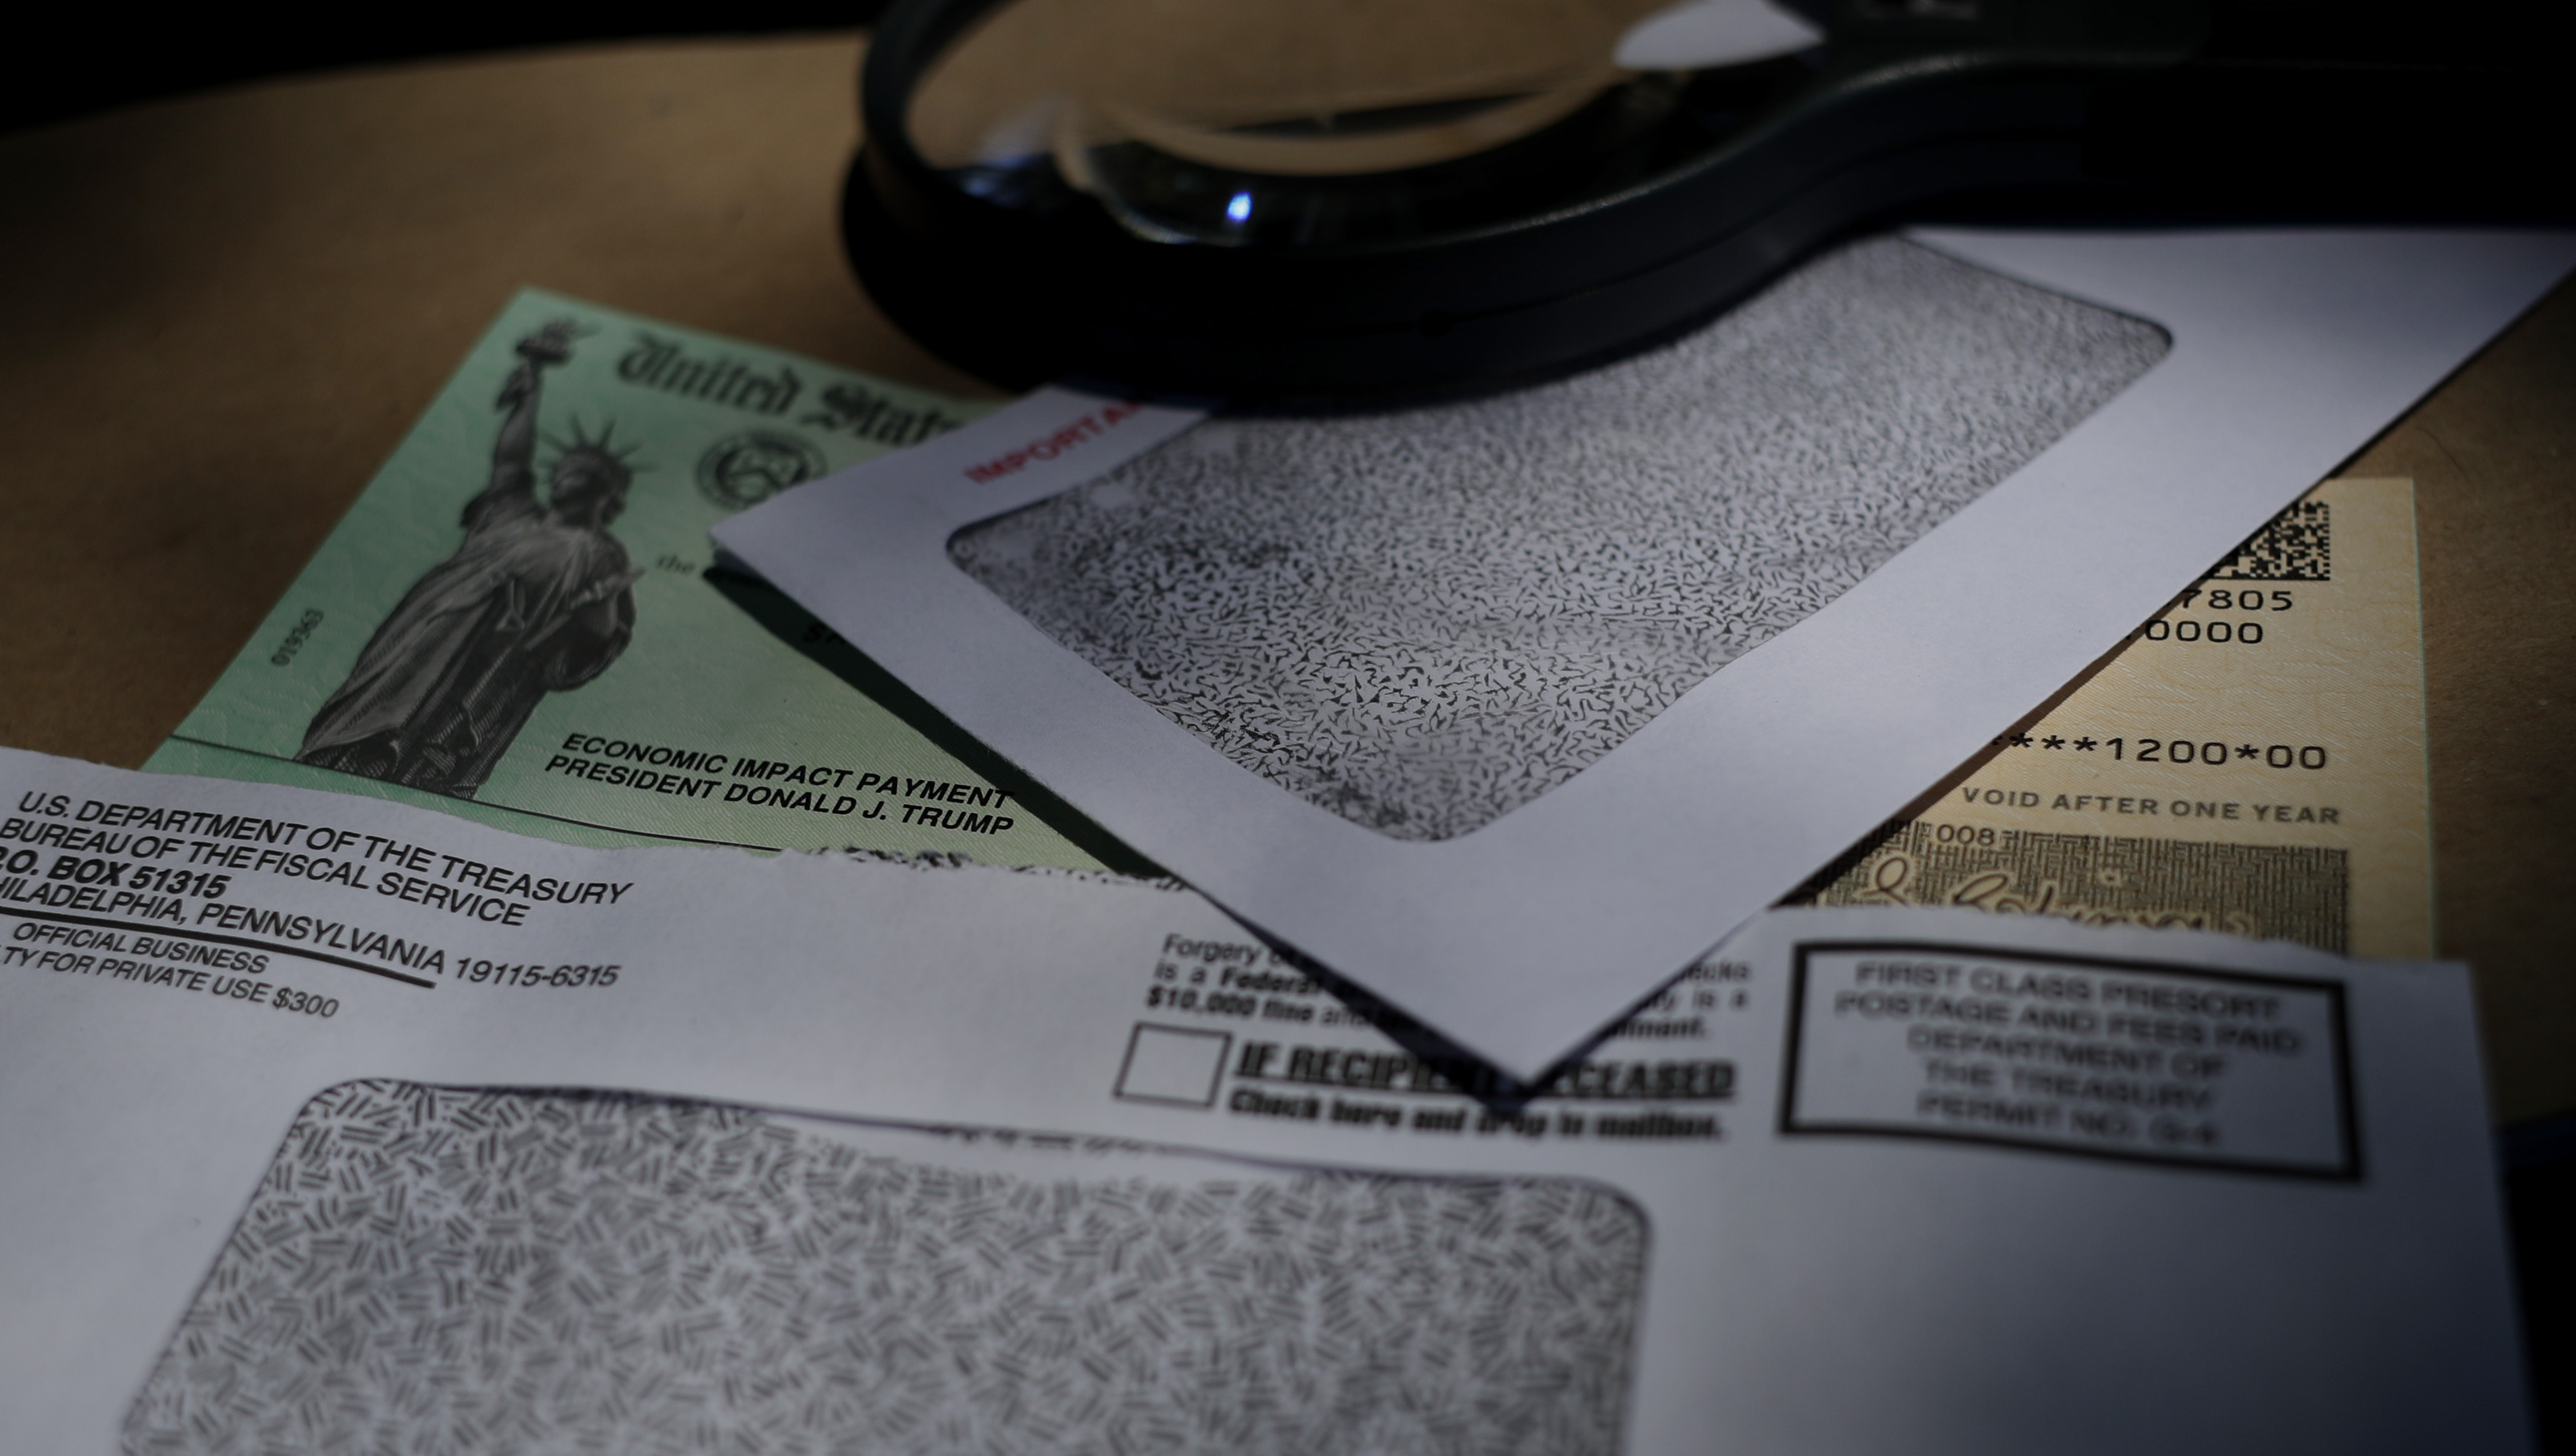 3rd stimulus check update: When to expect $1,400 payment and who's eligible?